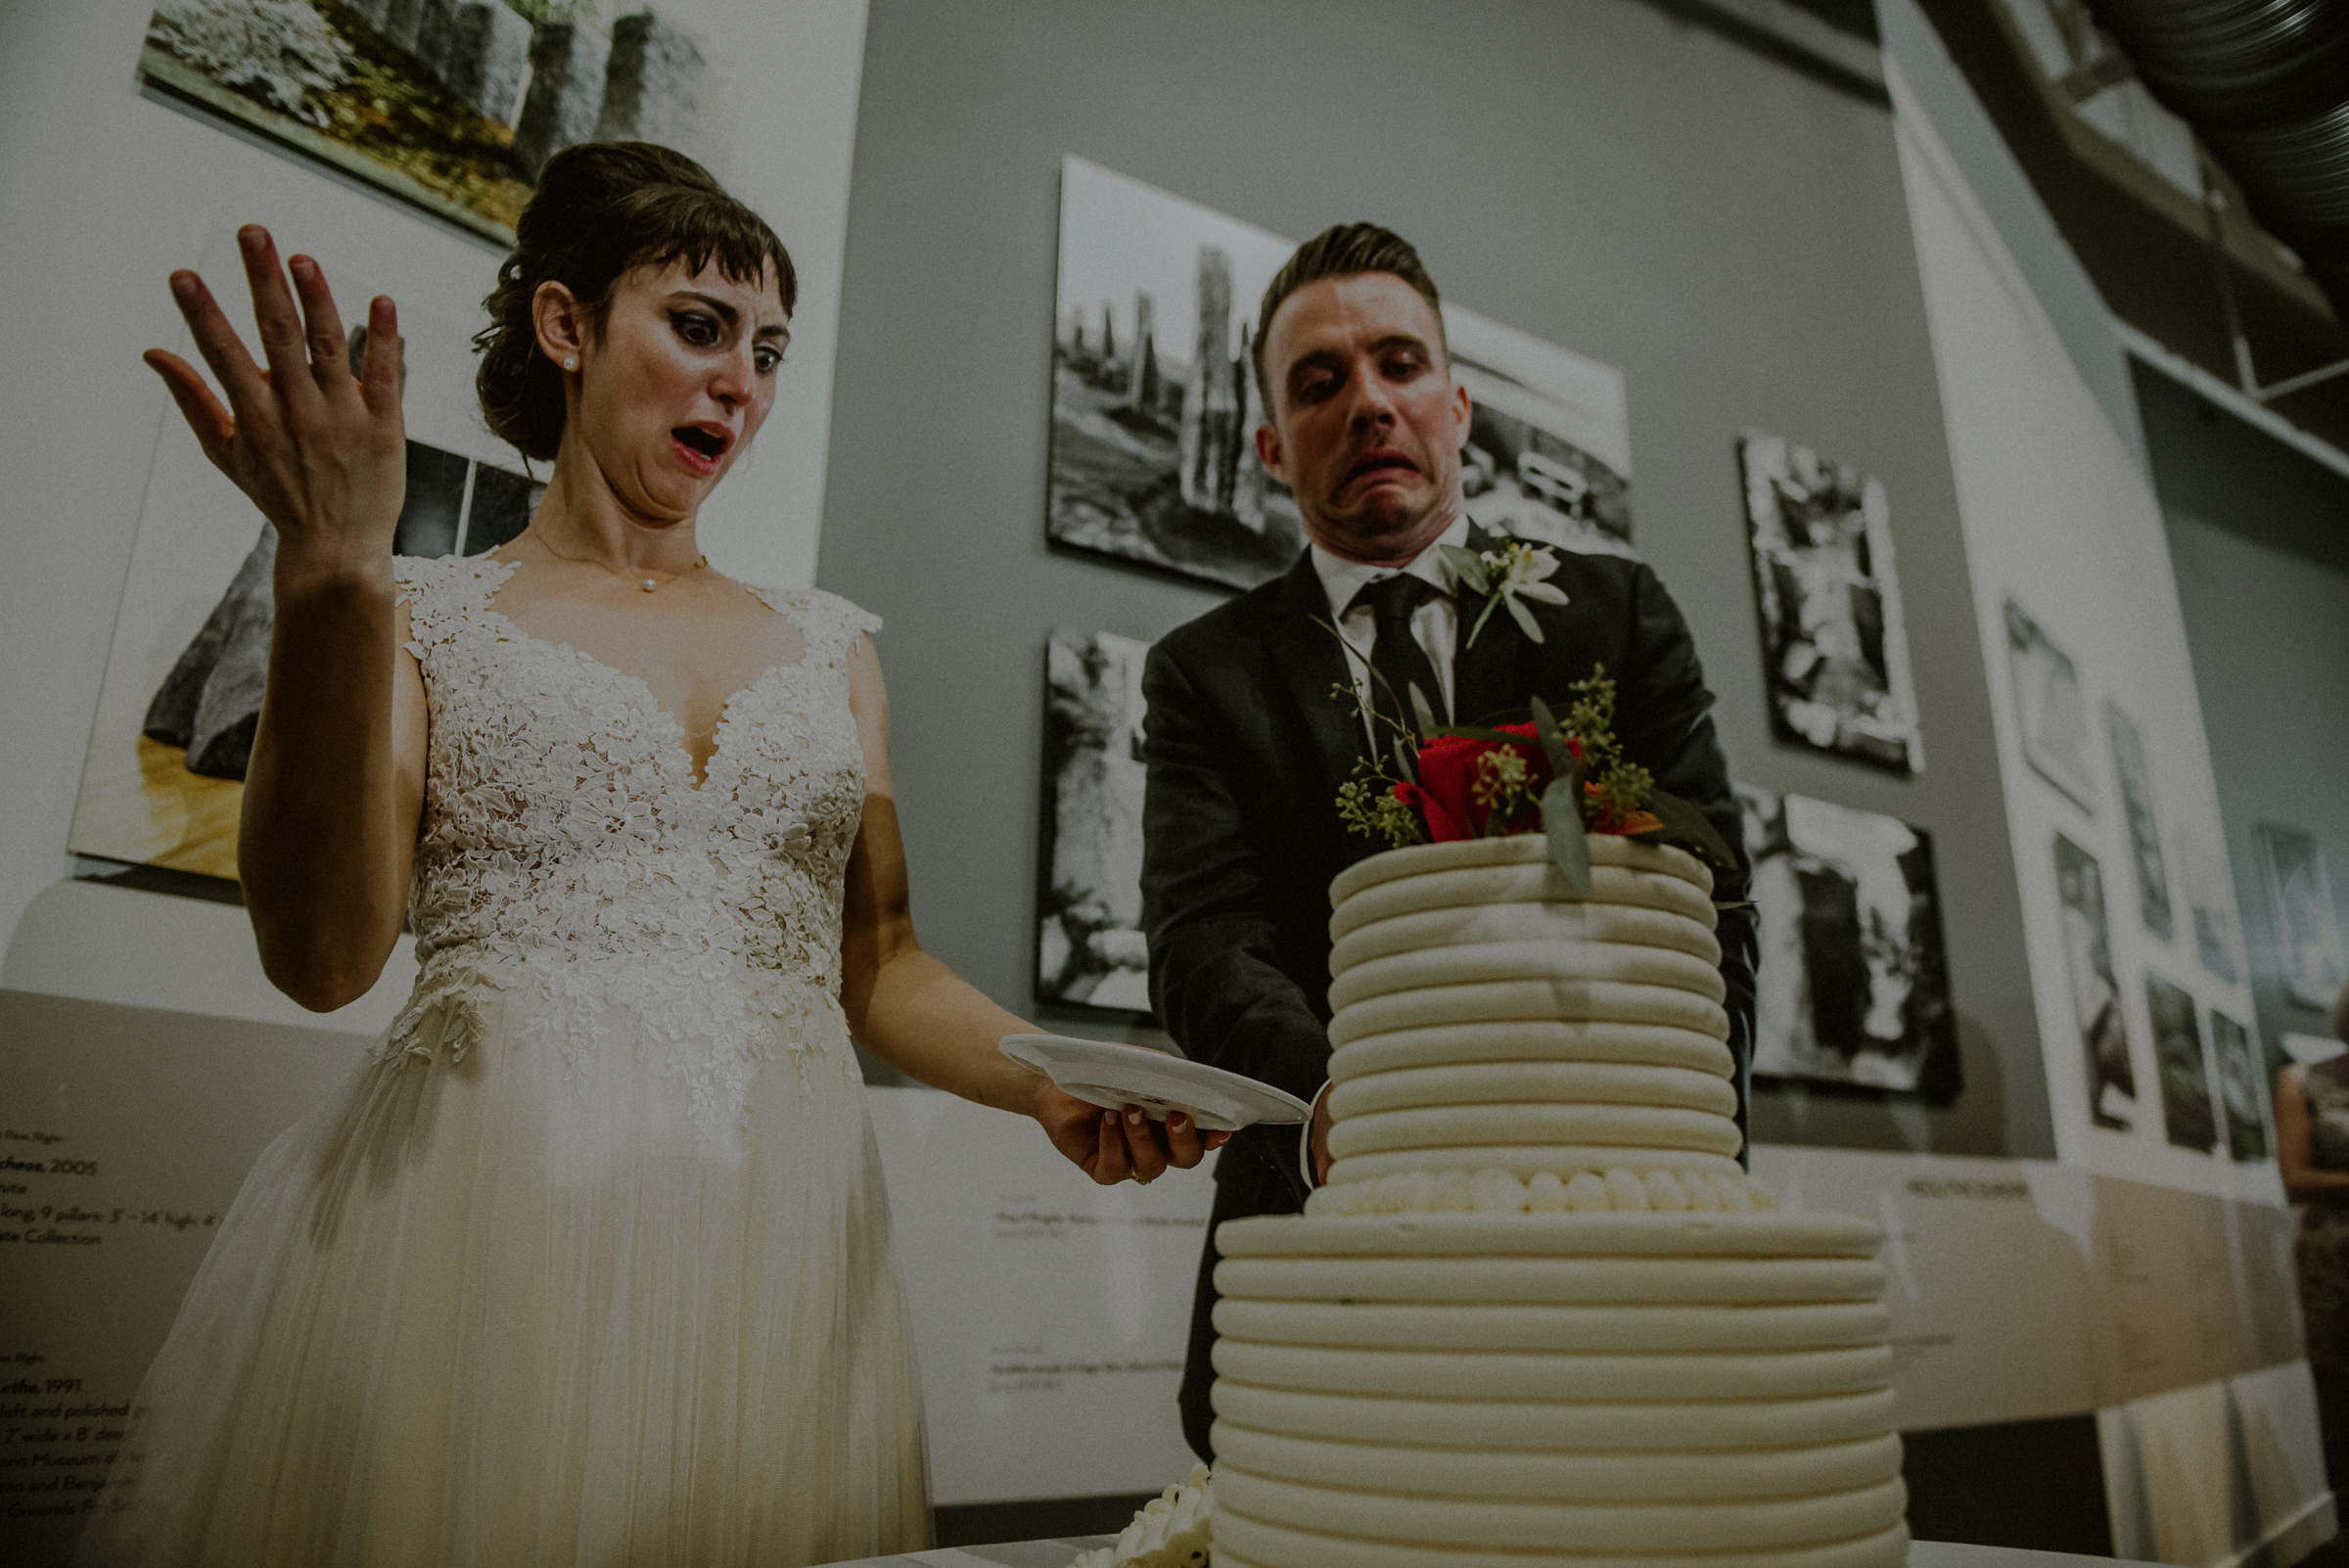 Comical portrait of couple cutting tiered cake - photo by Carolina Rivera Photography